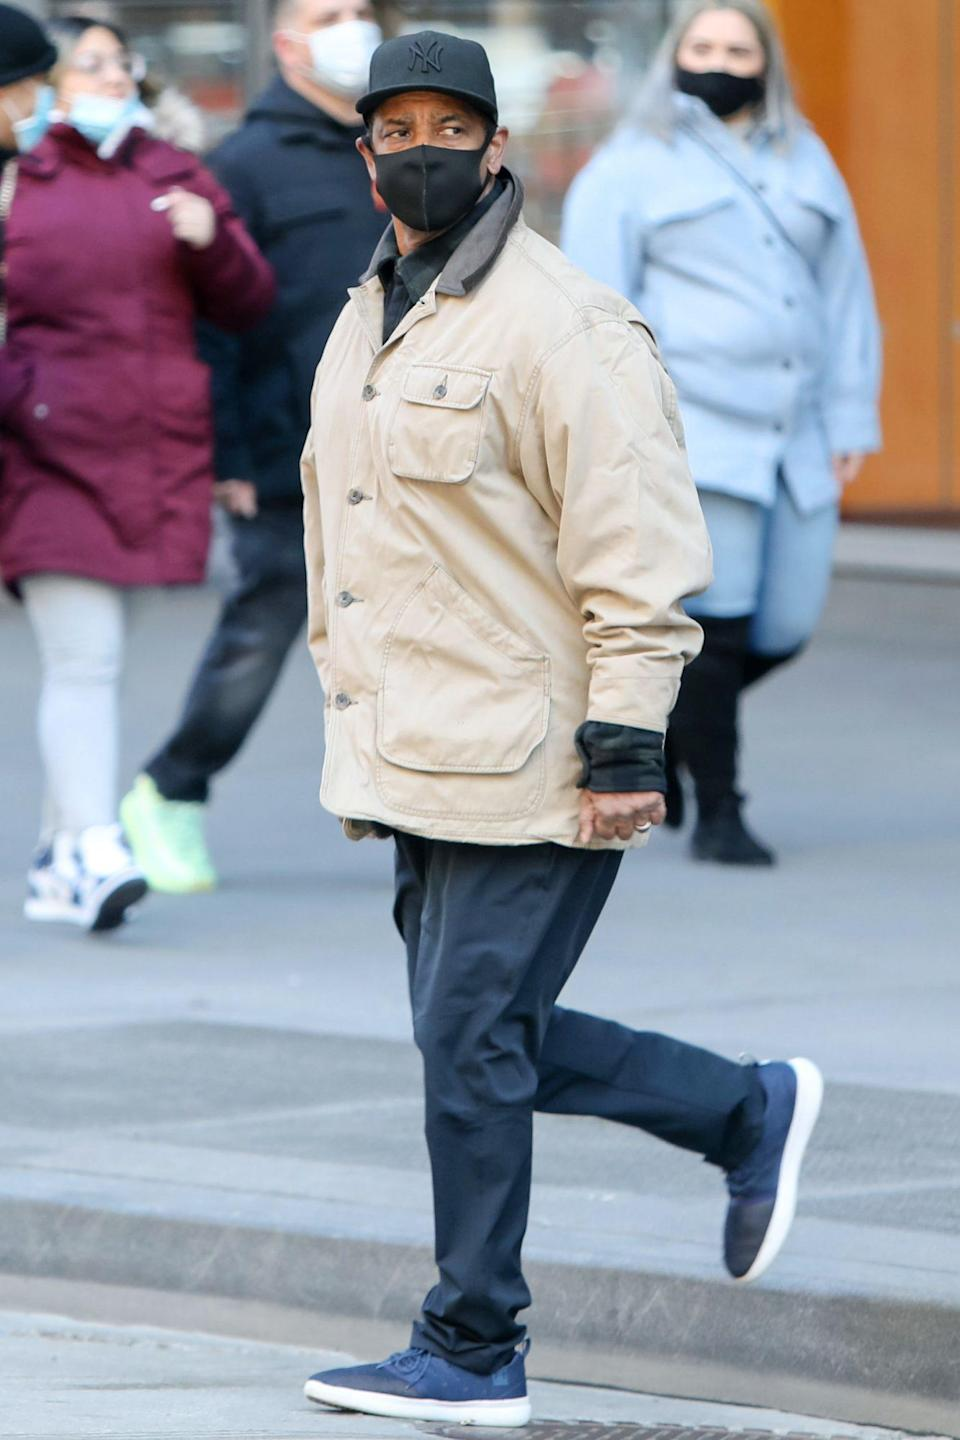 <p>Denzel Washington is seen on the set of his latest project <em>A Journal for Jordan</em> on Sunday in N.Y.C.'s Times Square.</p>